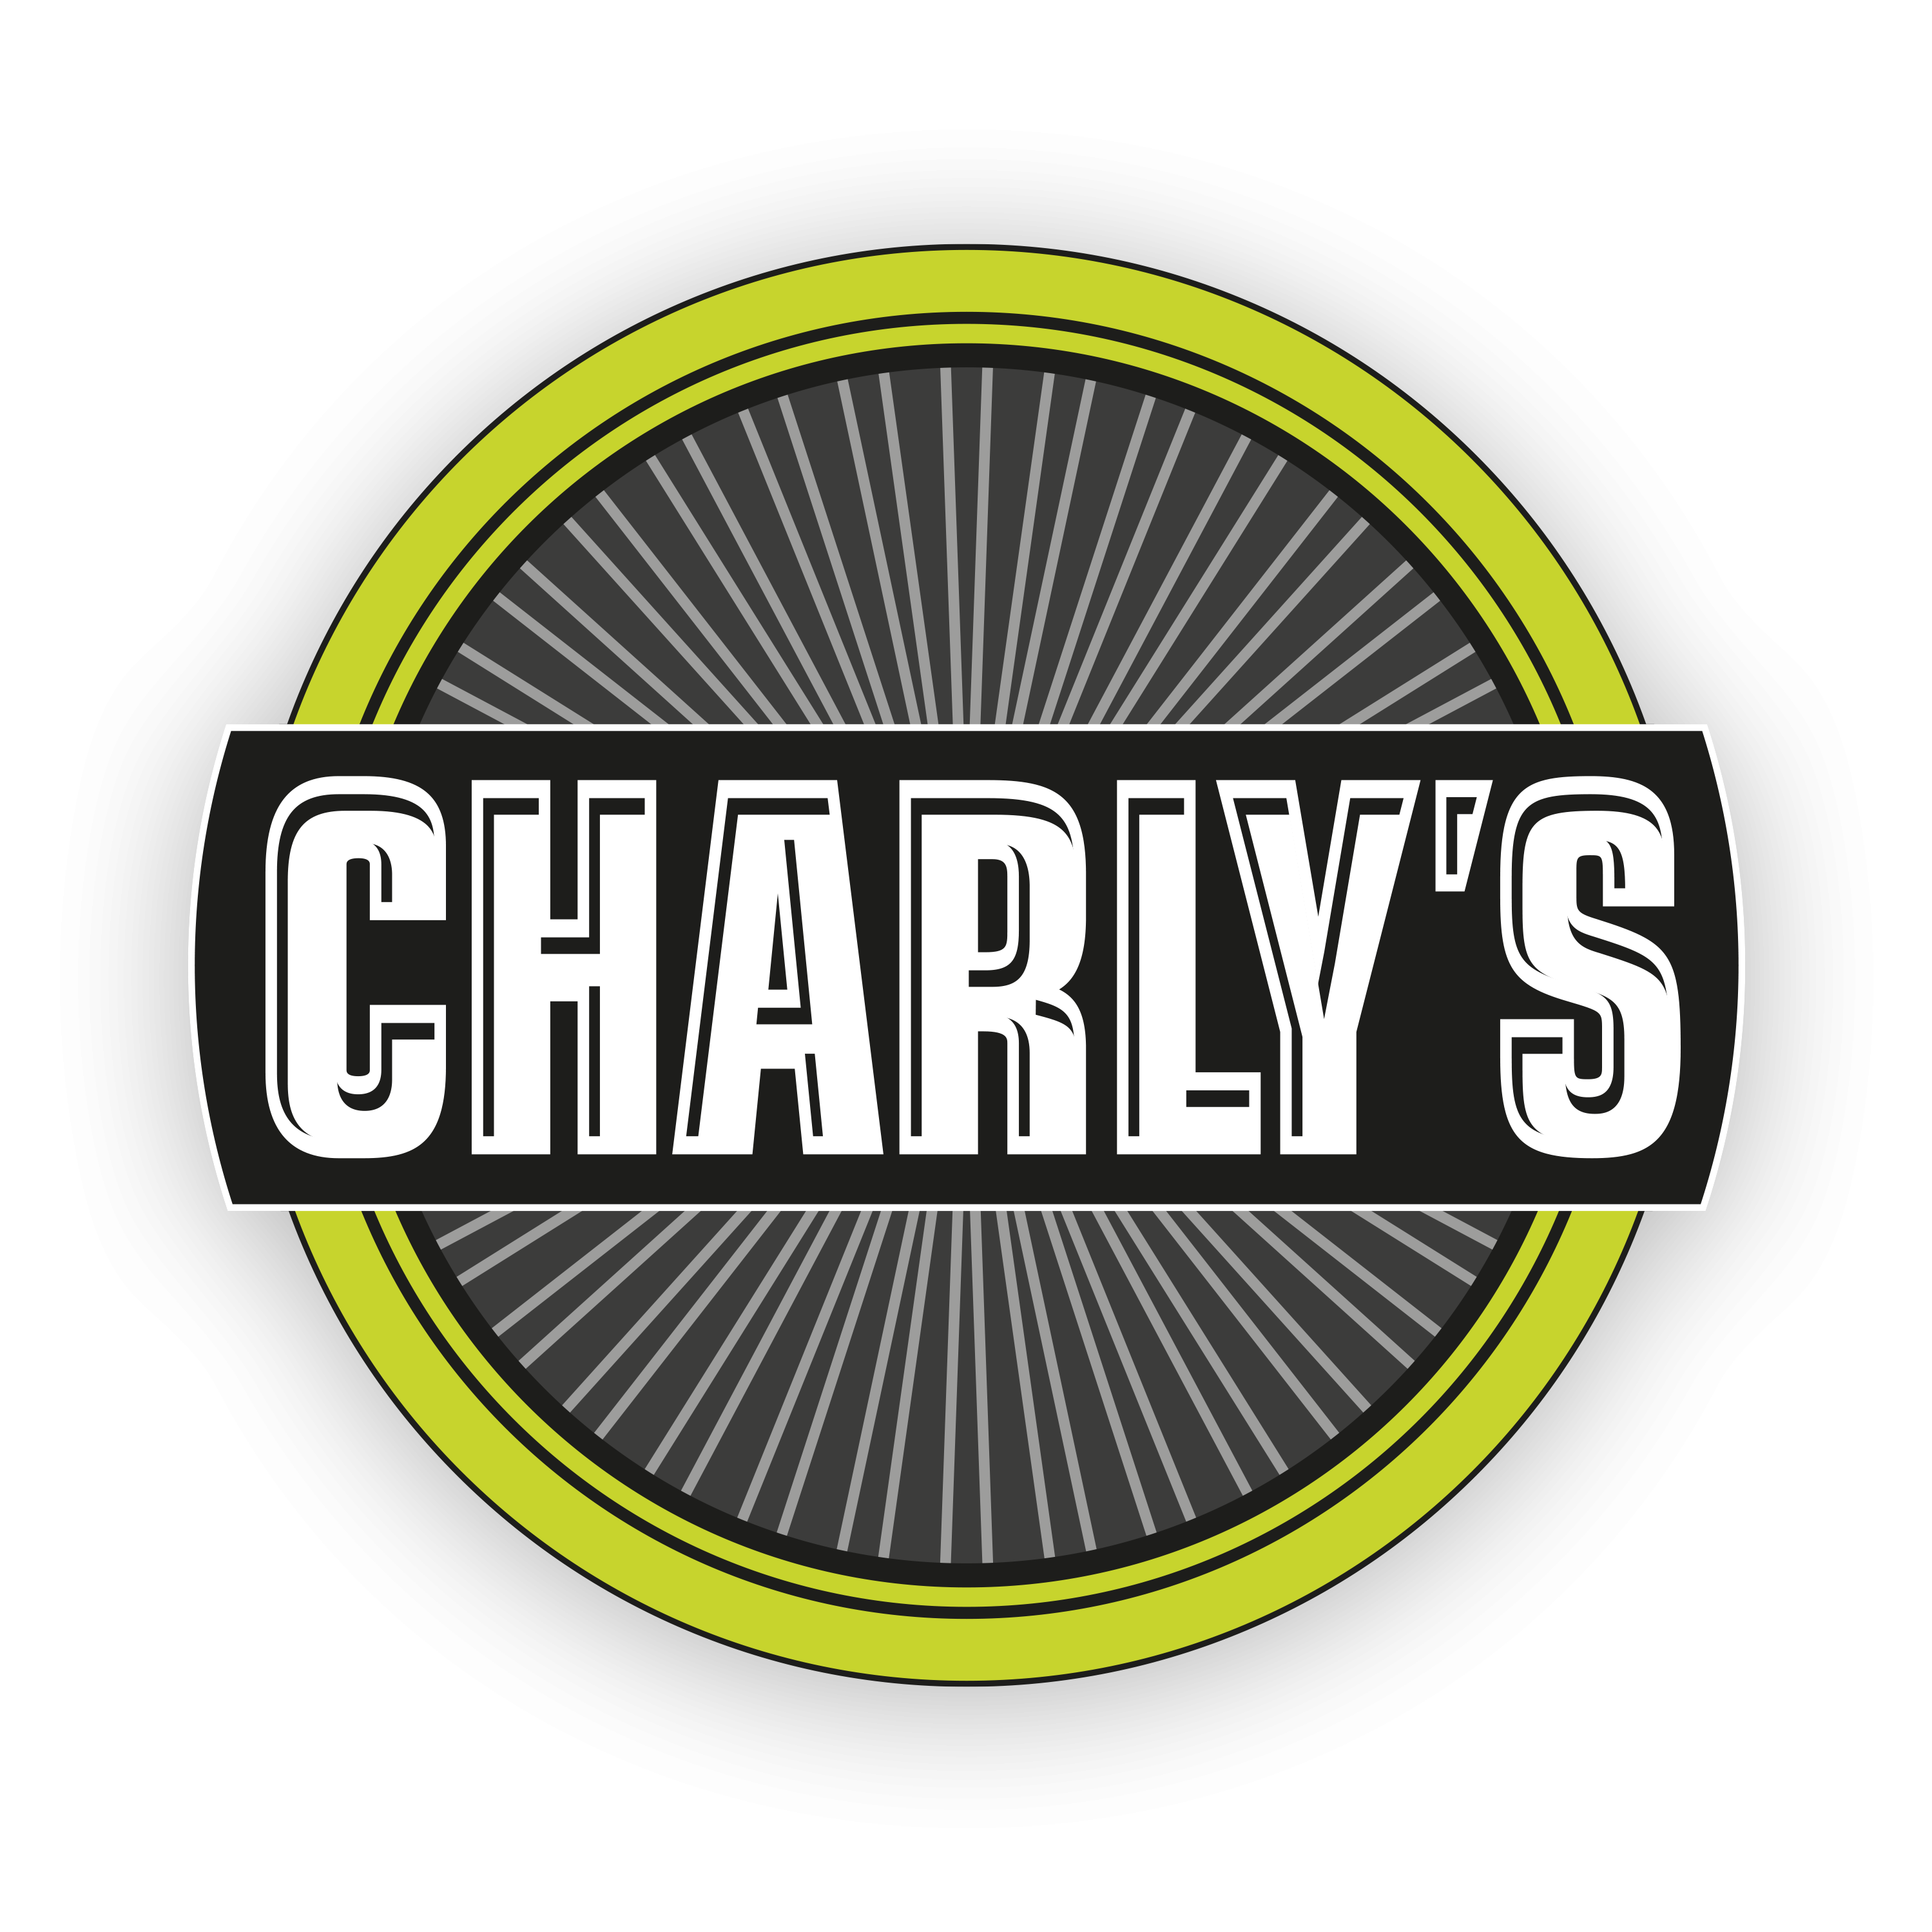 cropped-cropped-cropped-Charly-Logo-schatten-2-2-1.png